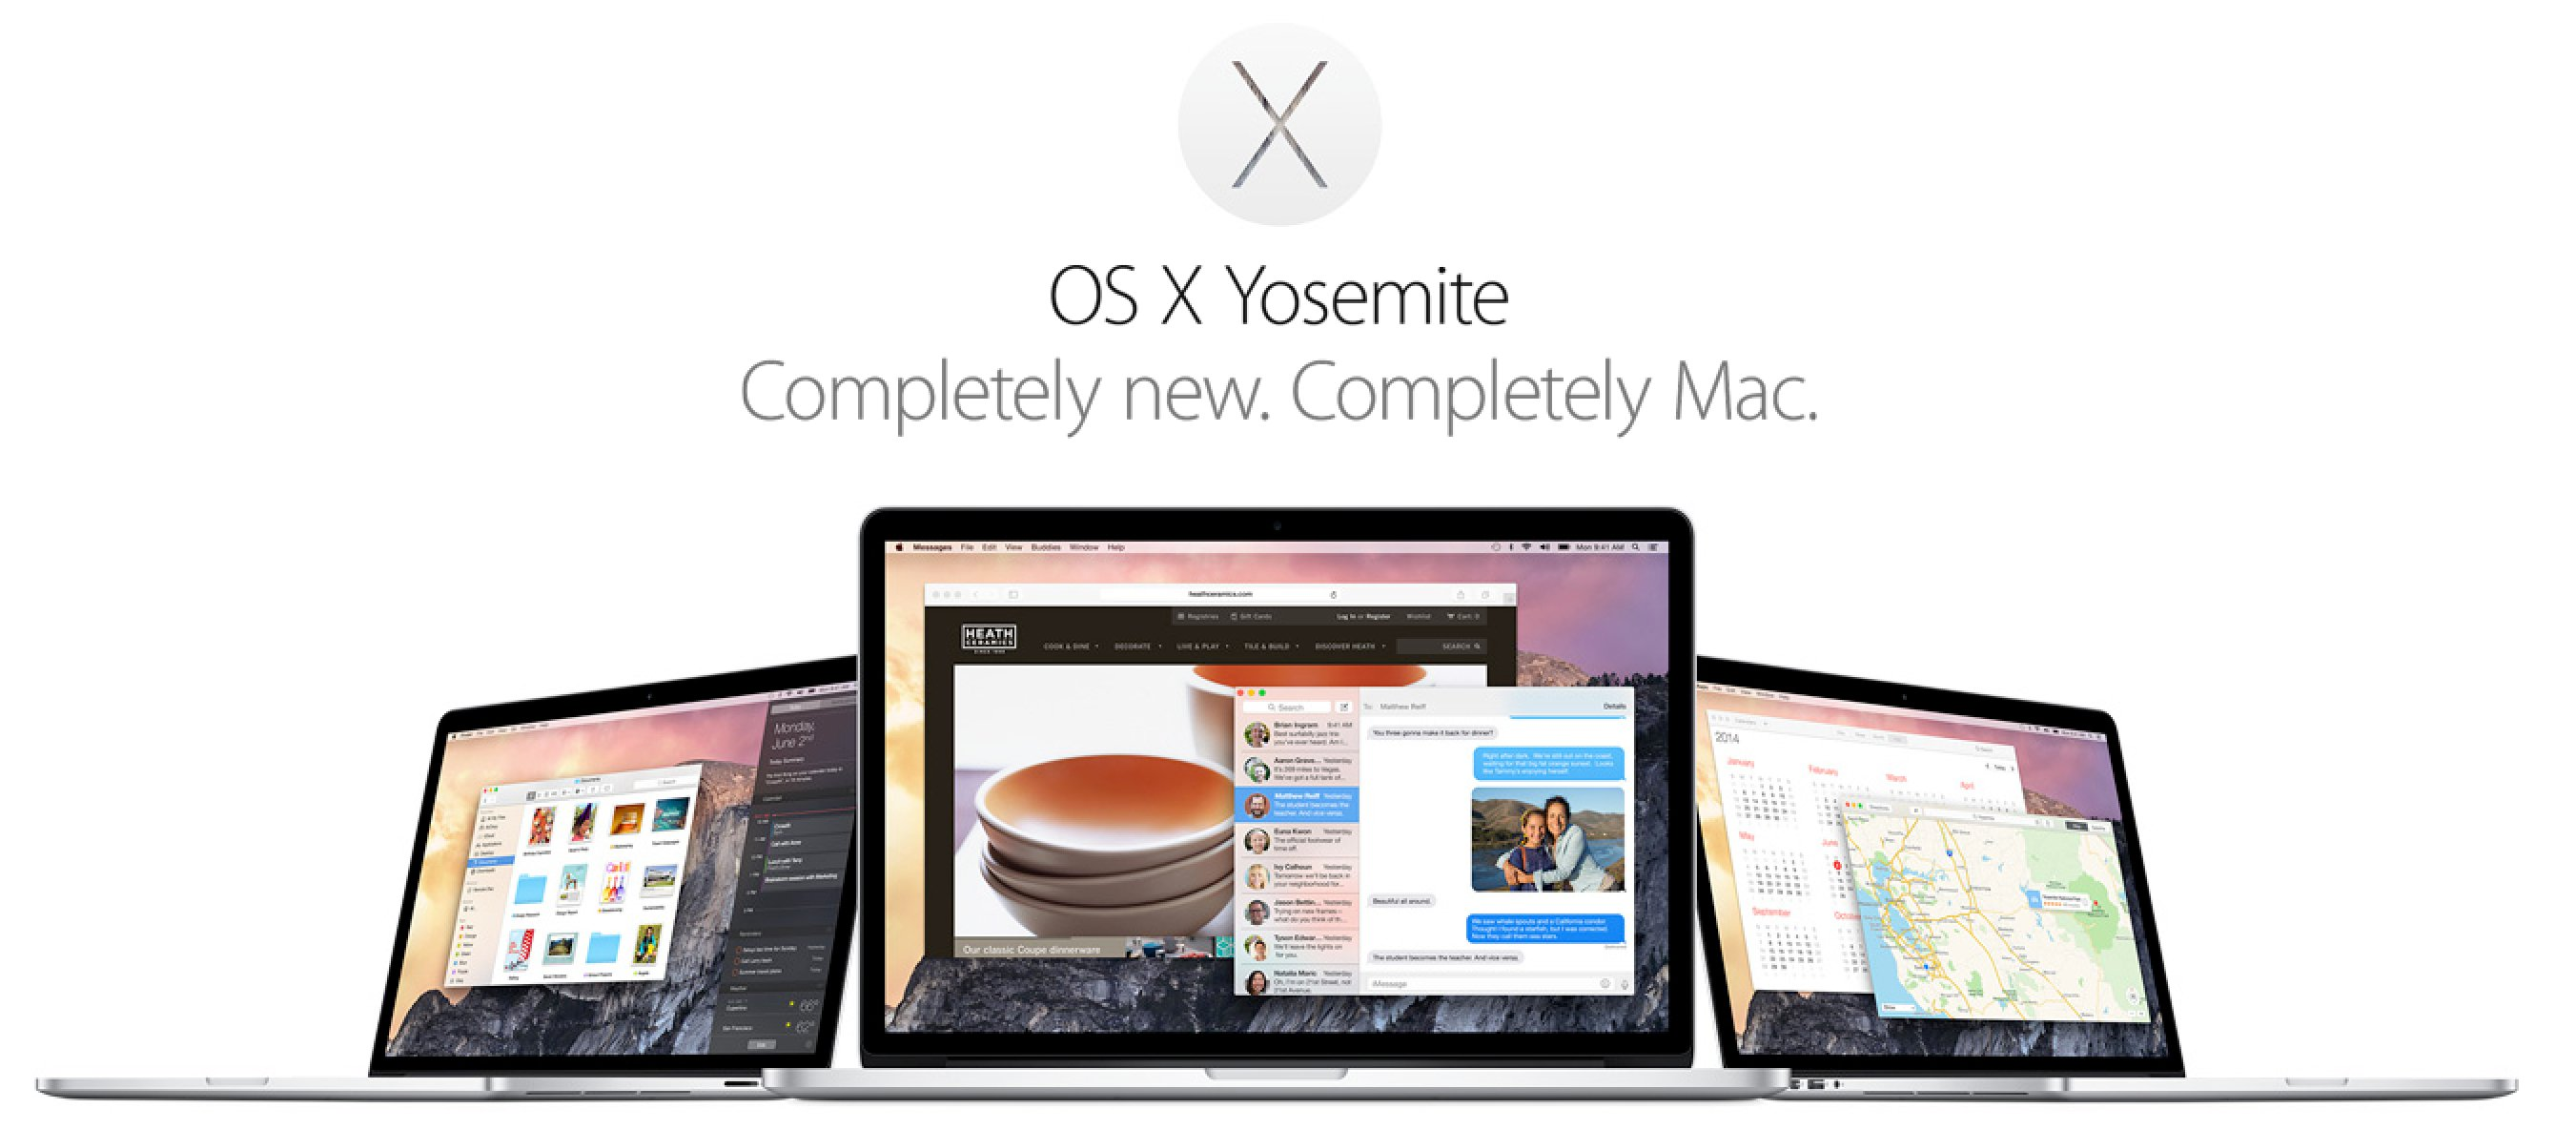 OS X 10.10 Yosemite: Ist mein Macbook Pro / Air, iMac kompatibel? 5